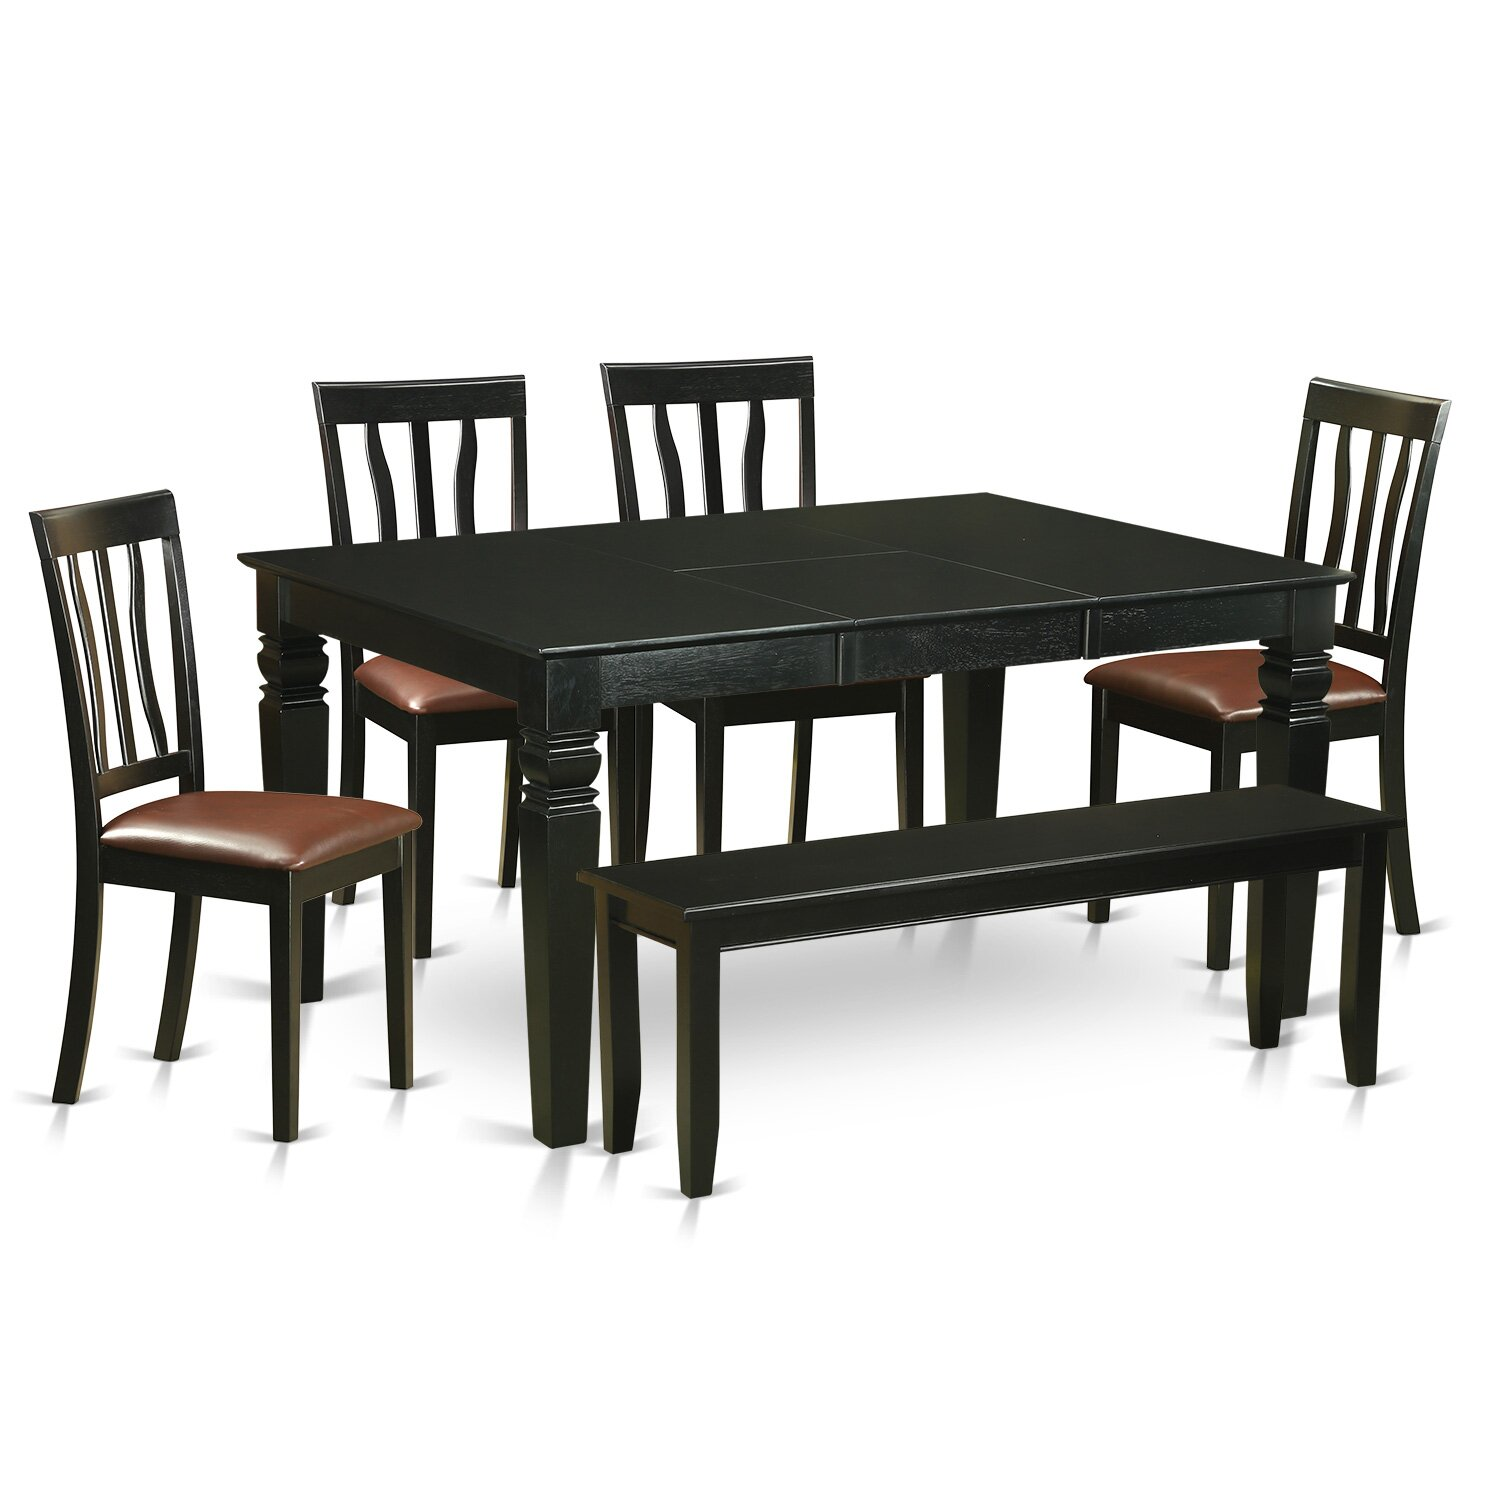 Wooden importers weston 6 piece dining set wayfair for Dining room sets 6 piece